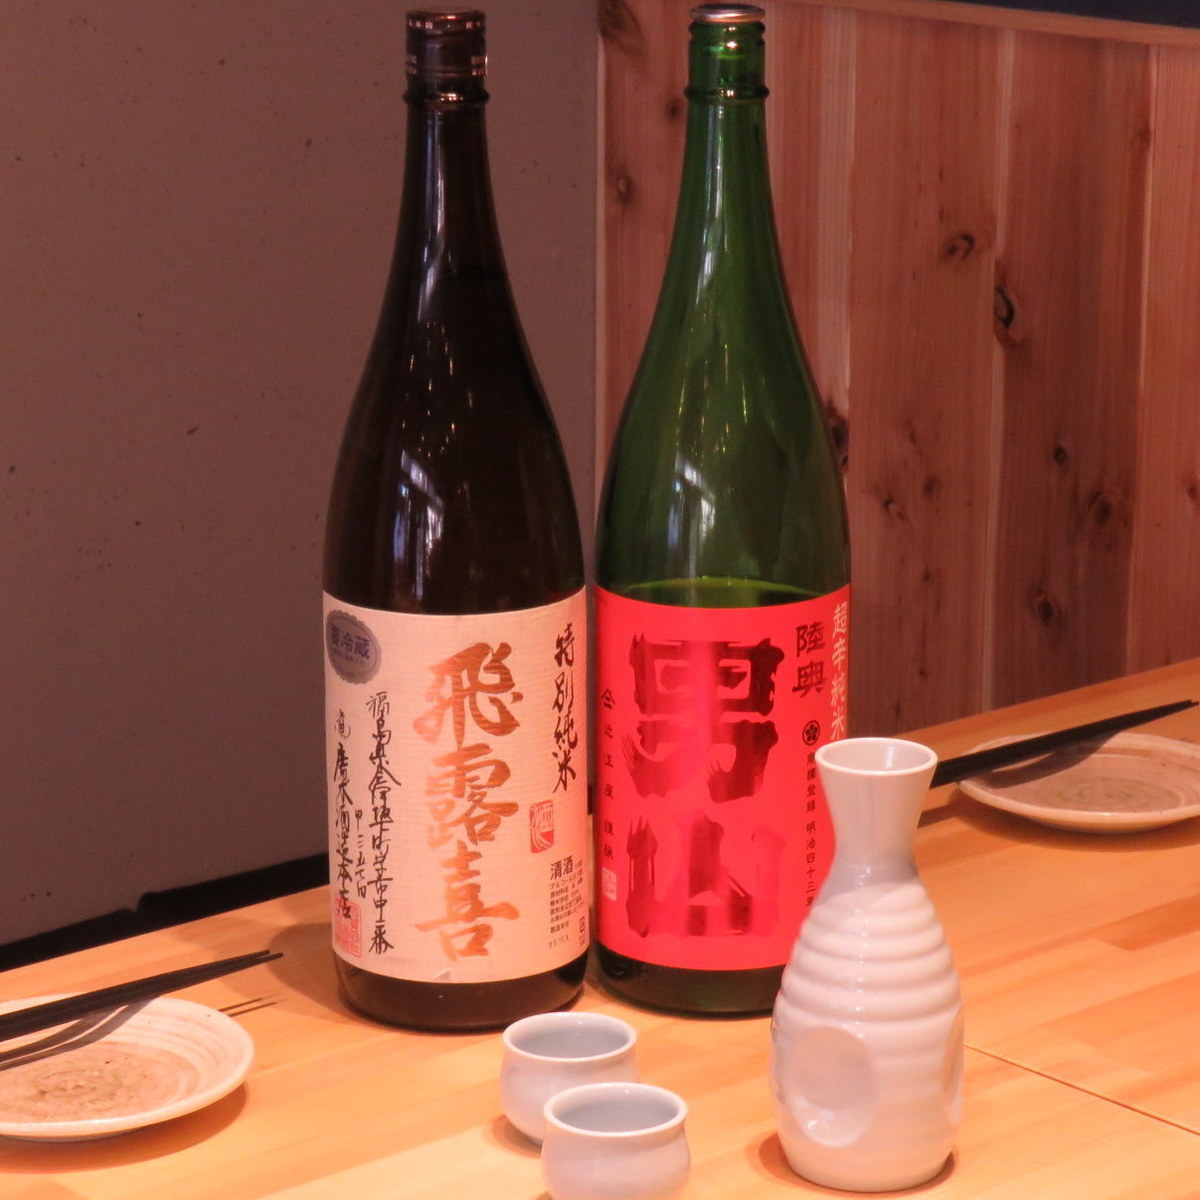 We have local sake all over the country!